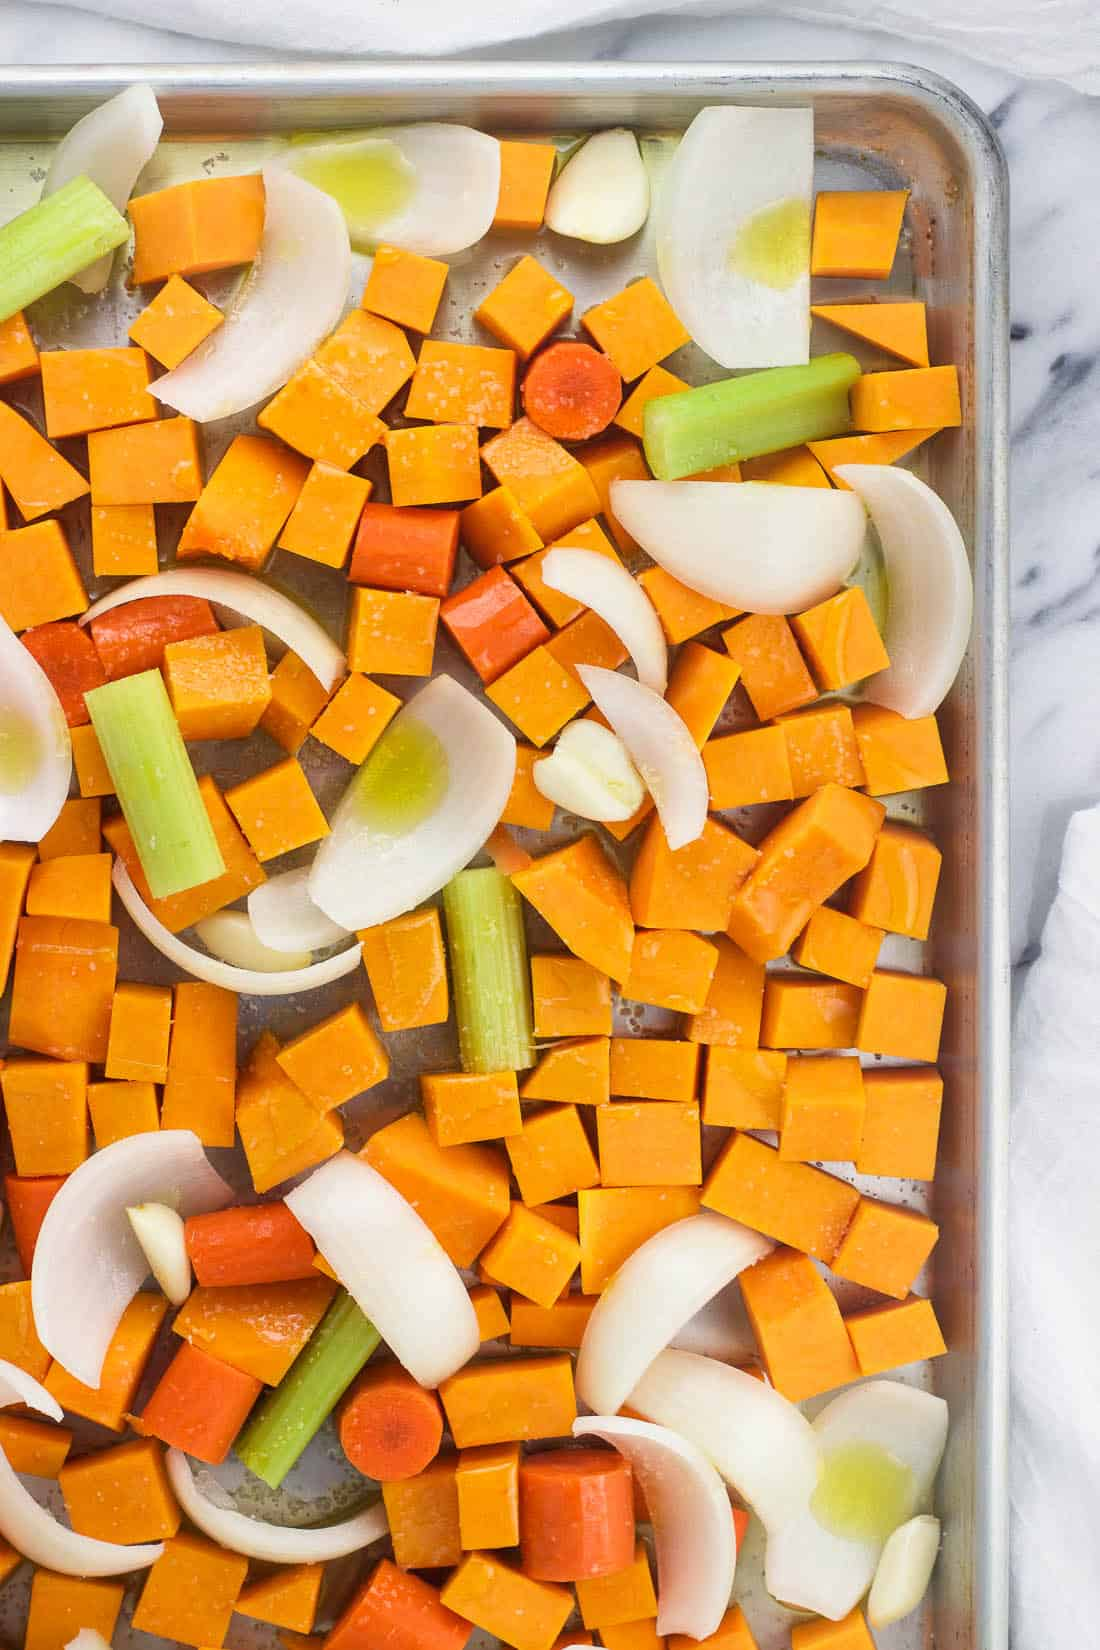 Butternut squash soup ingredients on a baking sheet before roasting, including butternut squash cubes, carrots, celery, onion, and garlic cloves